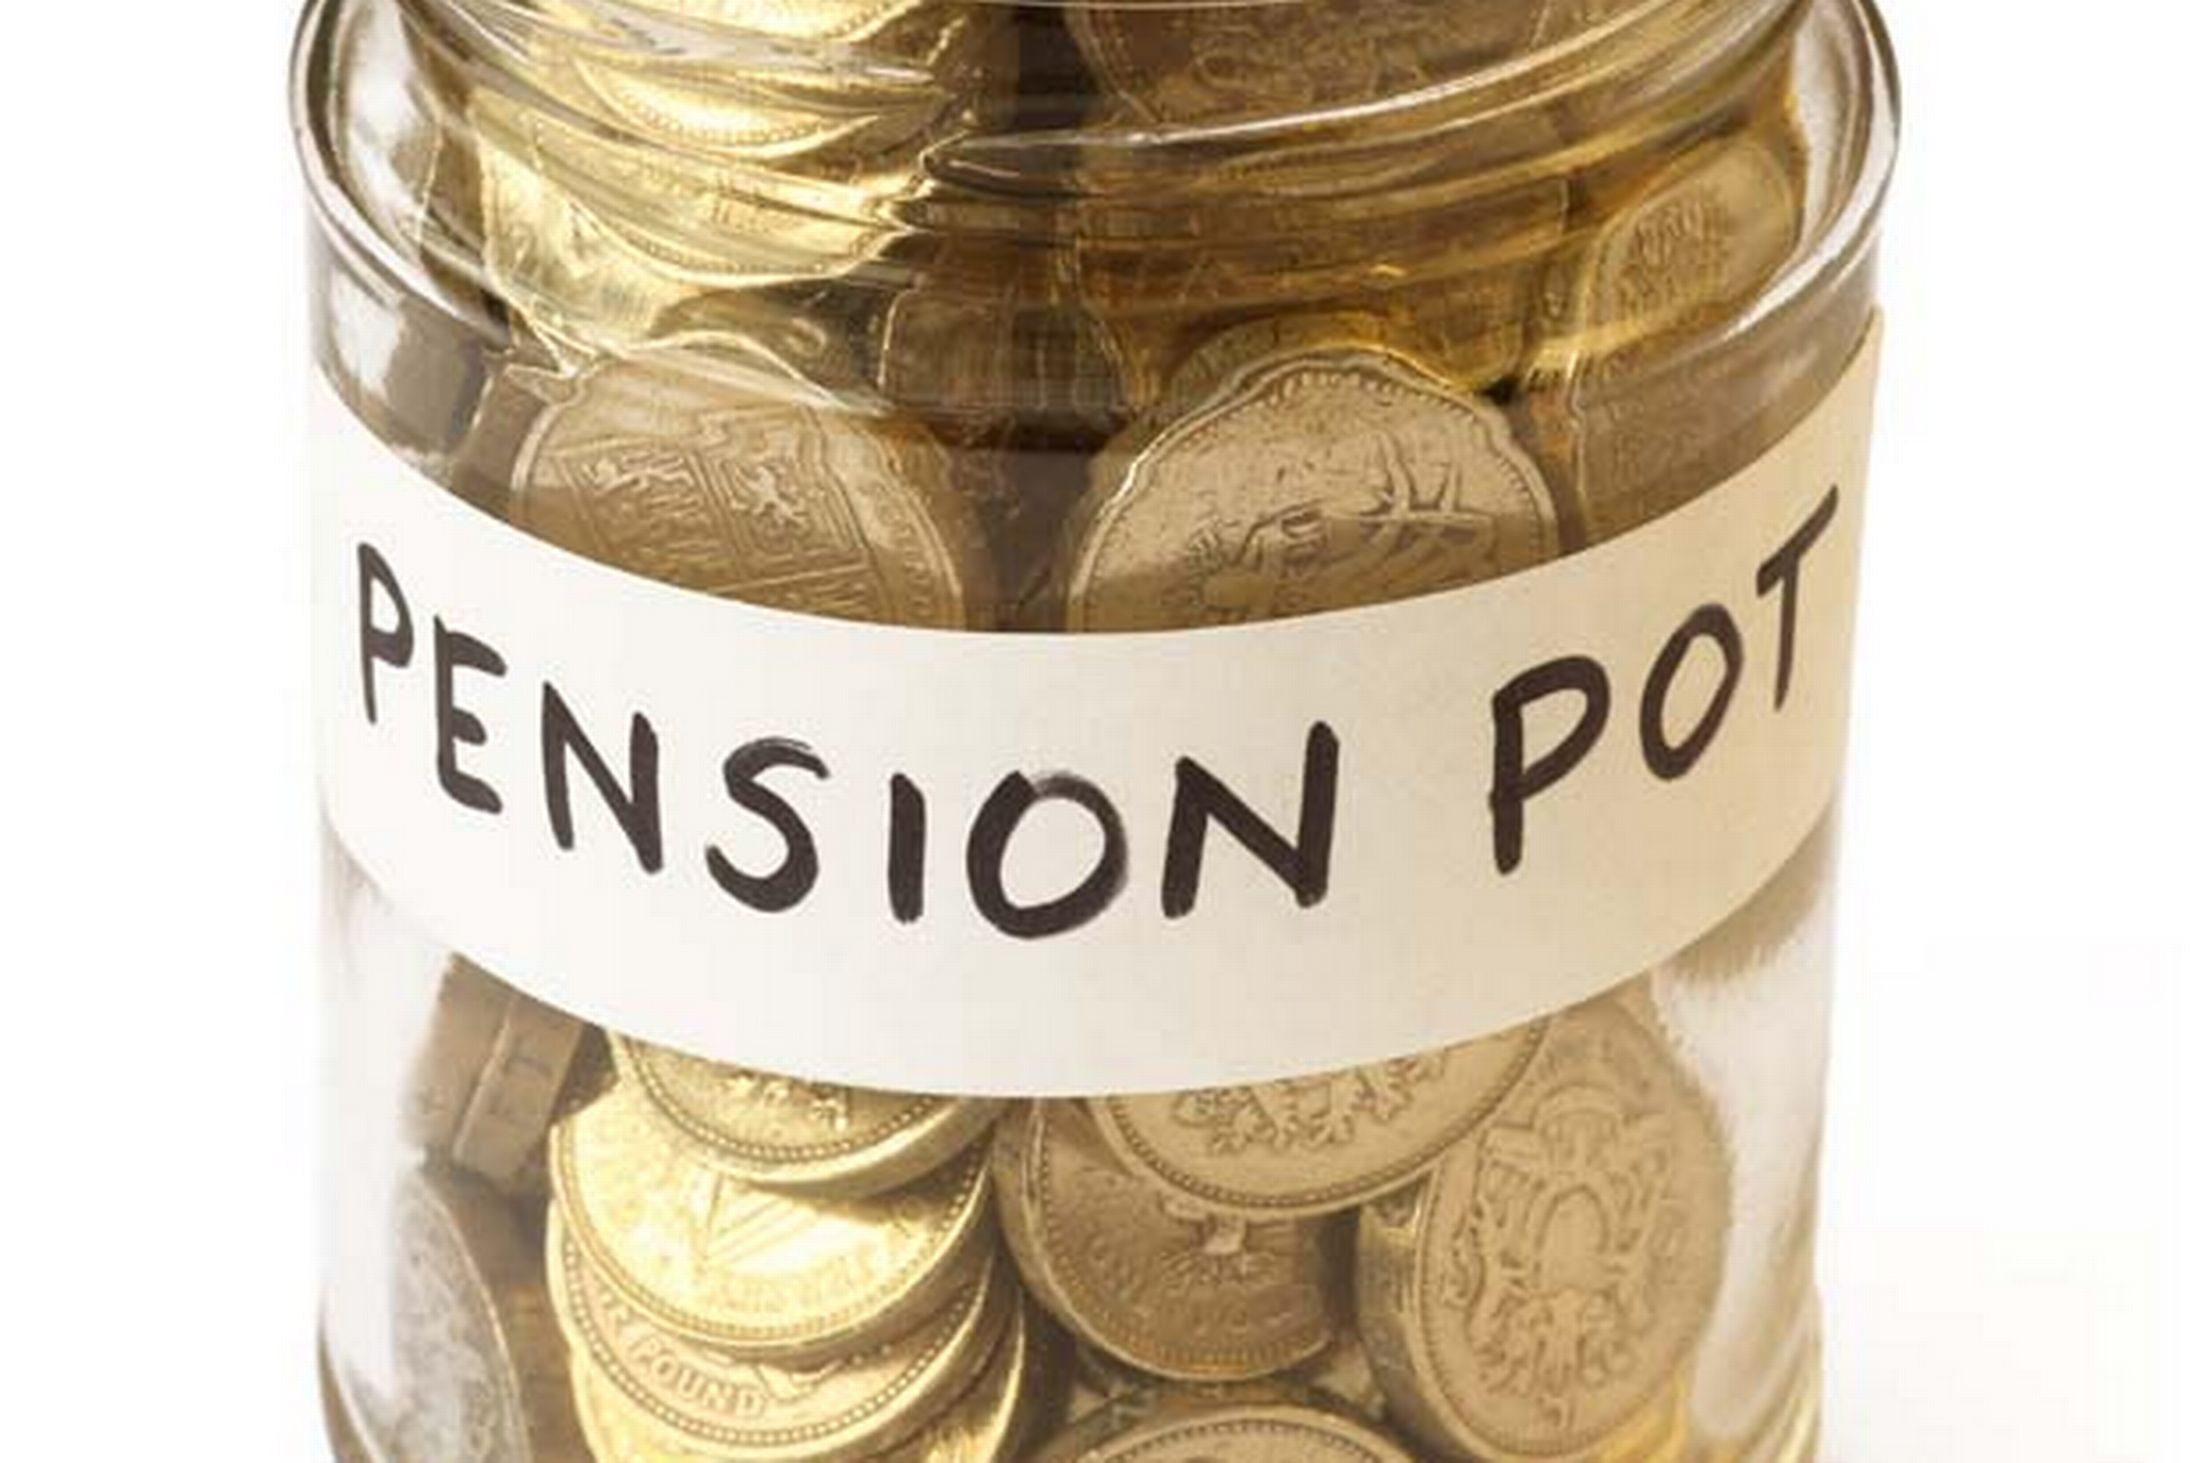 Savings for pension collected in jam jar-1744280 (1)